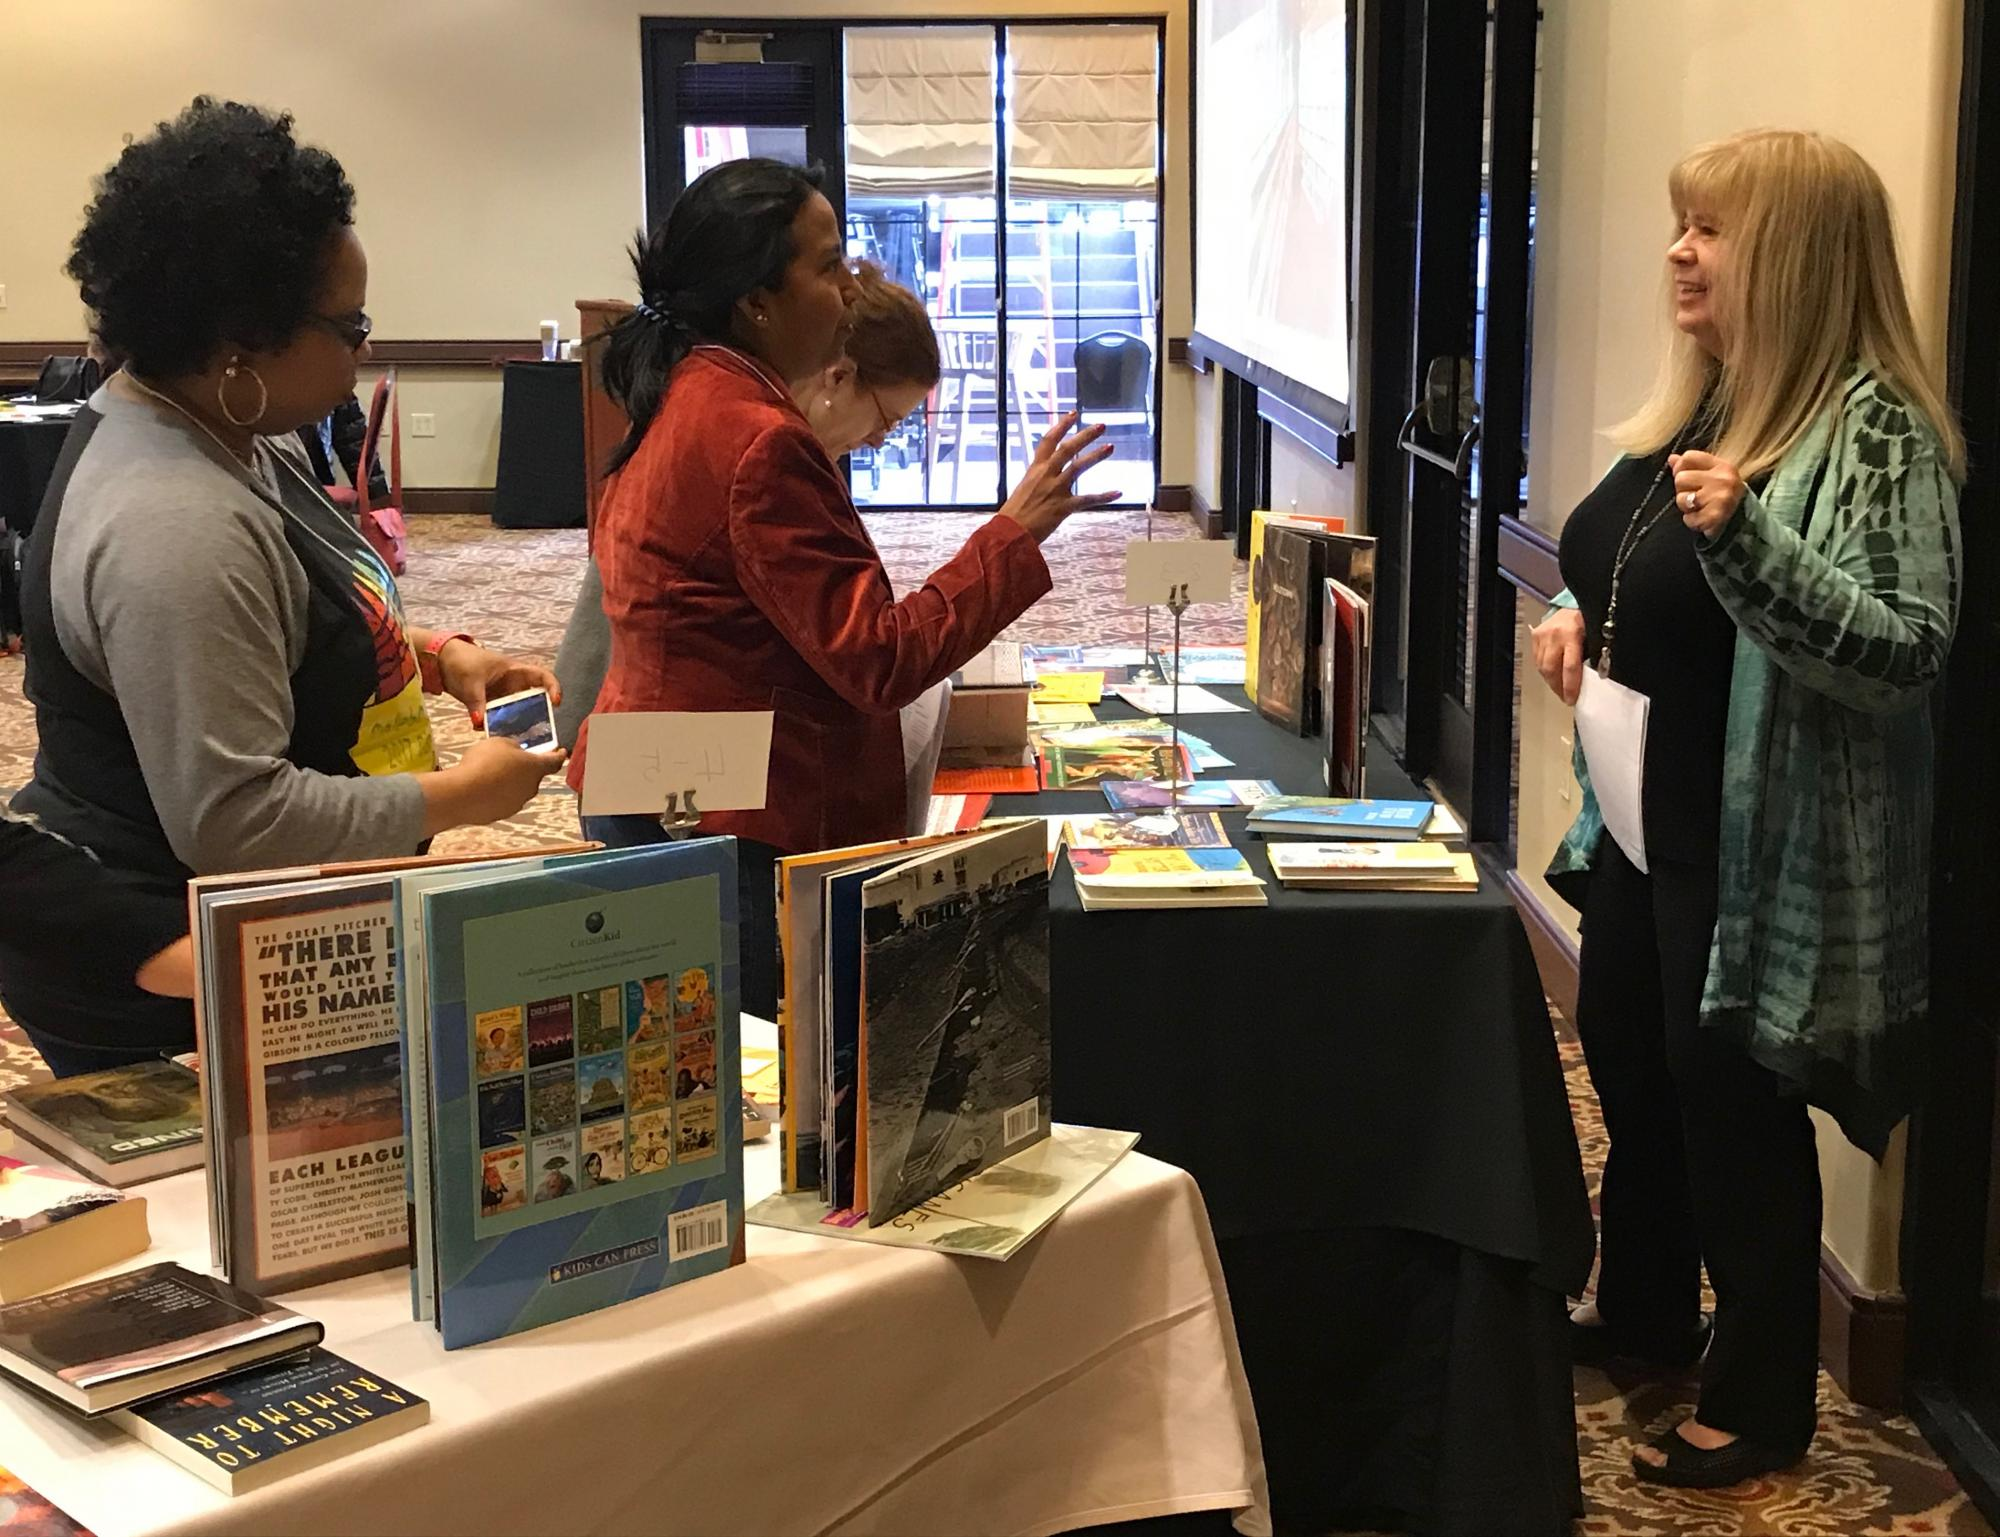 Kathy Short, project director at the Center for Educational Resources in Culture, Language and Literacy, gave a workshop at the 2018 Intercultural Competence Conference.